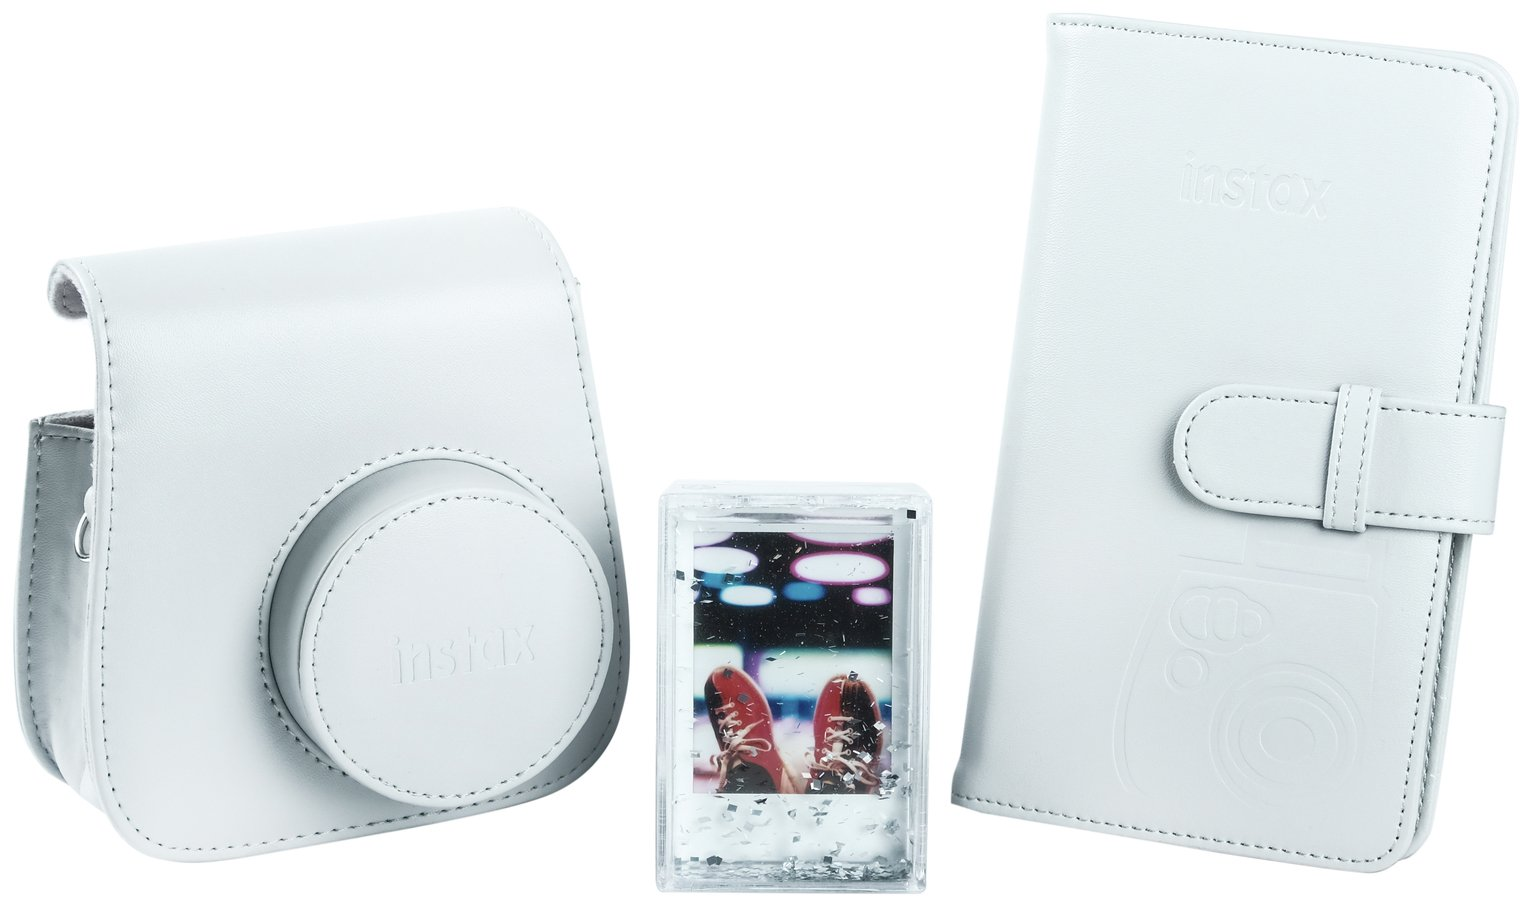 Instax Mini 9 Accessory Kit - Smokey White